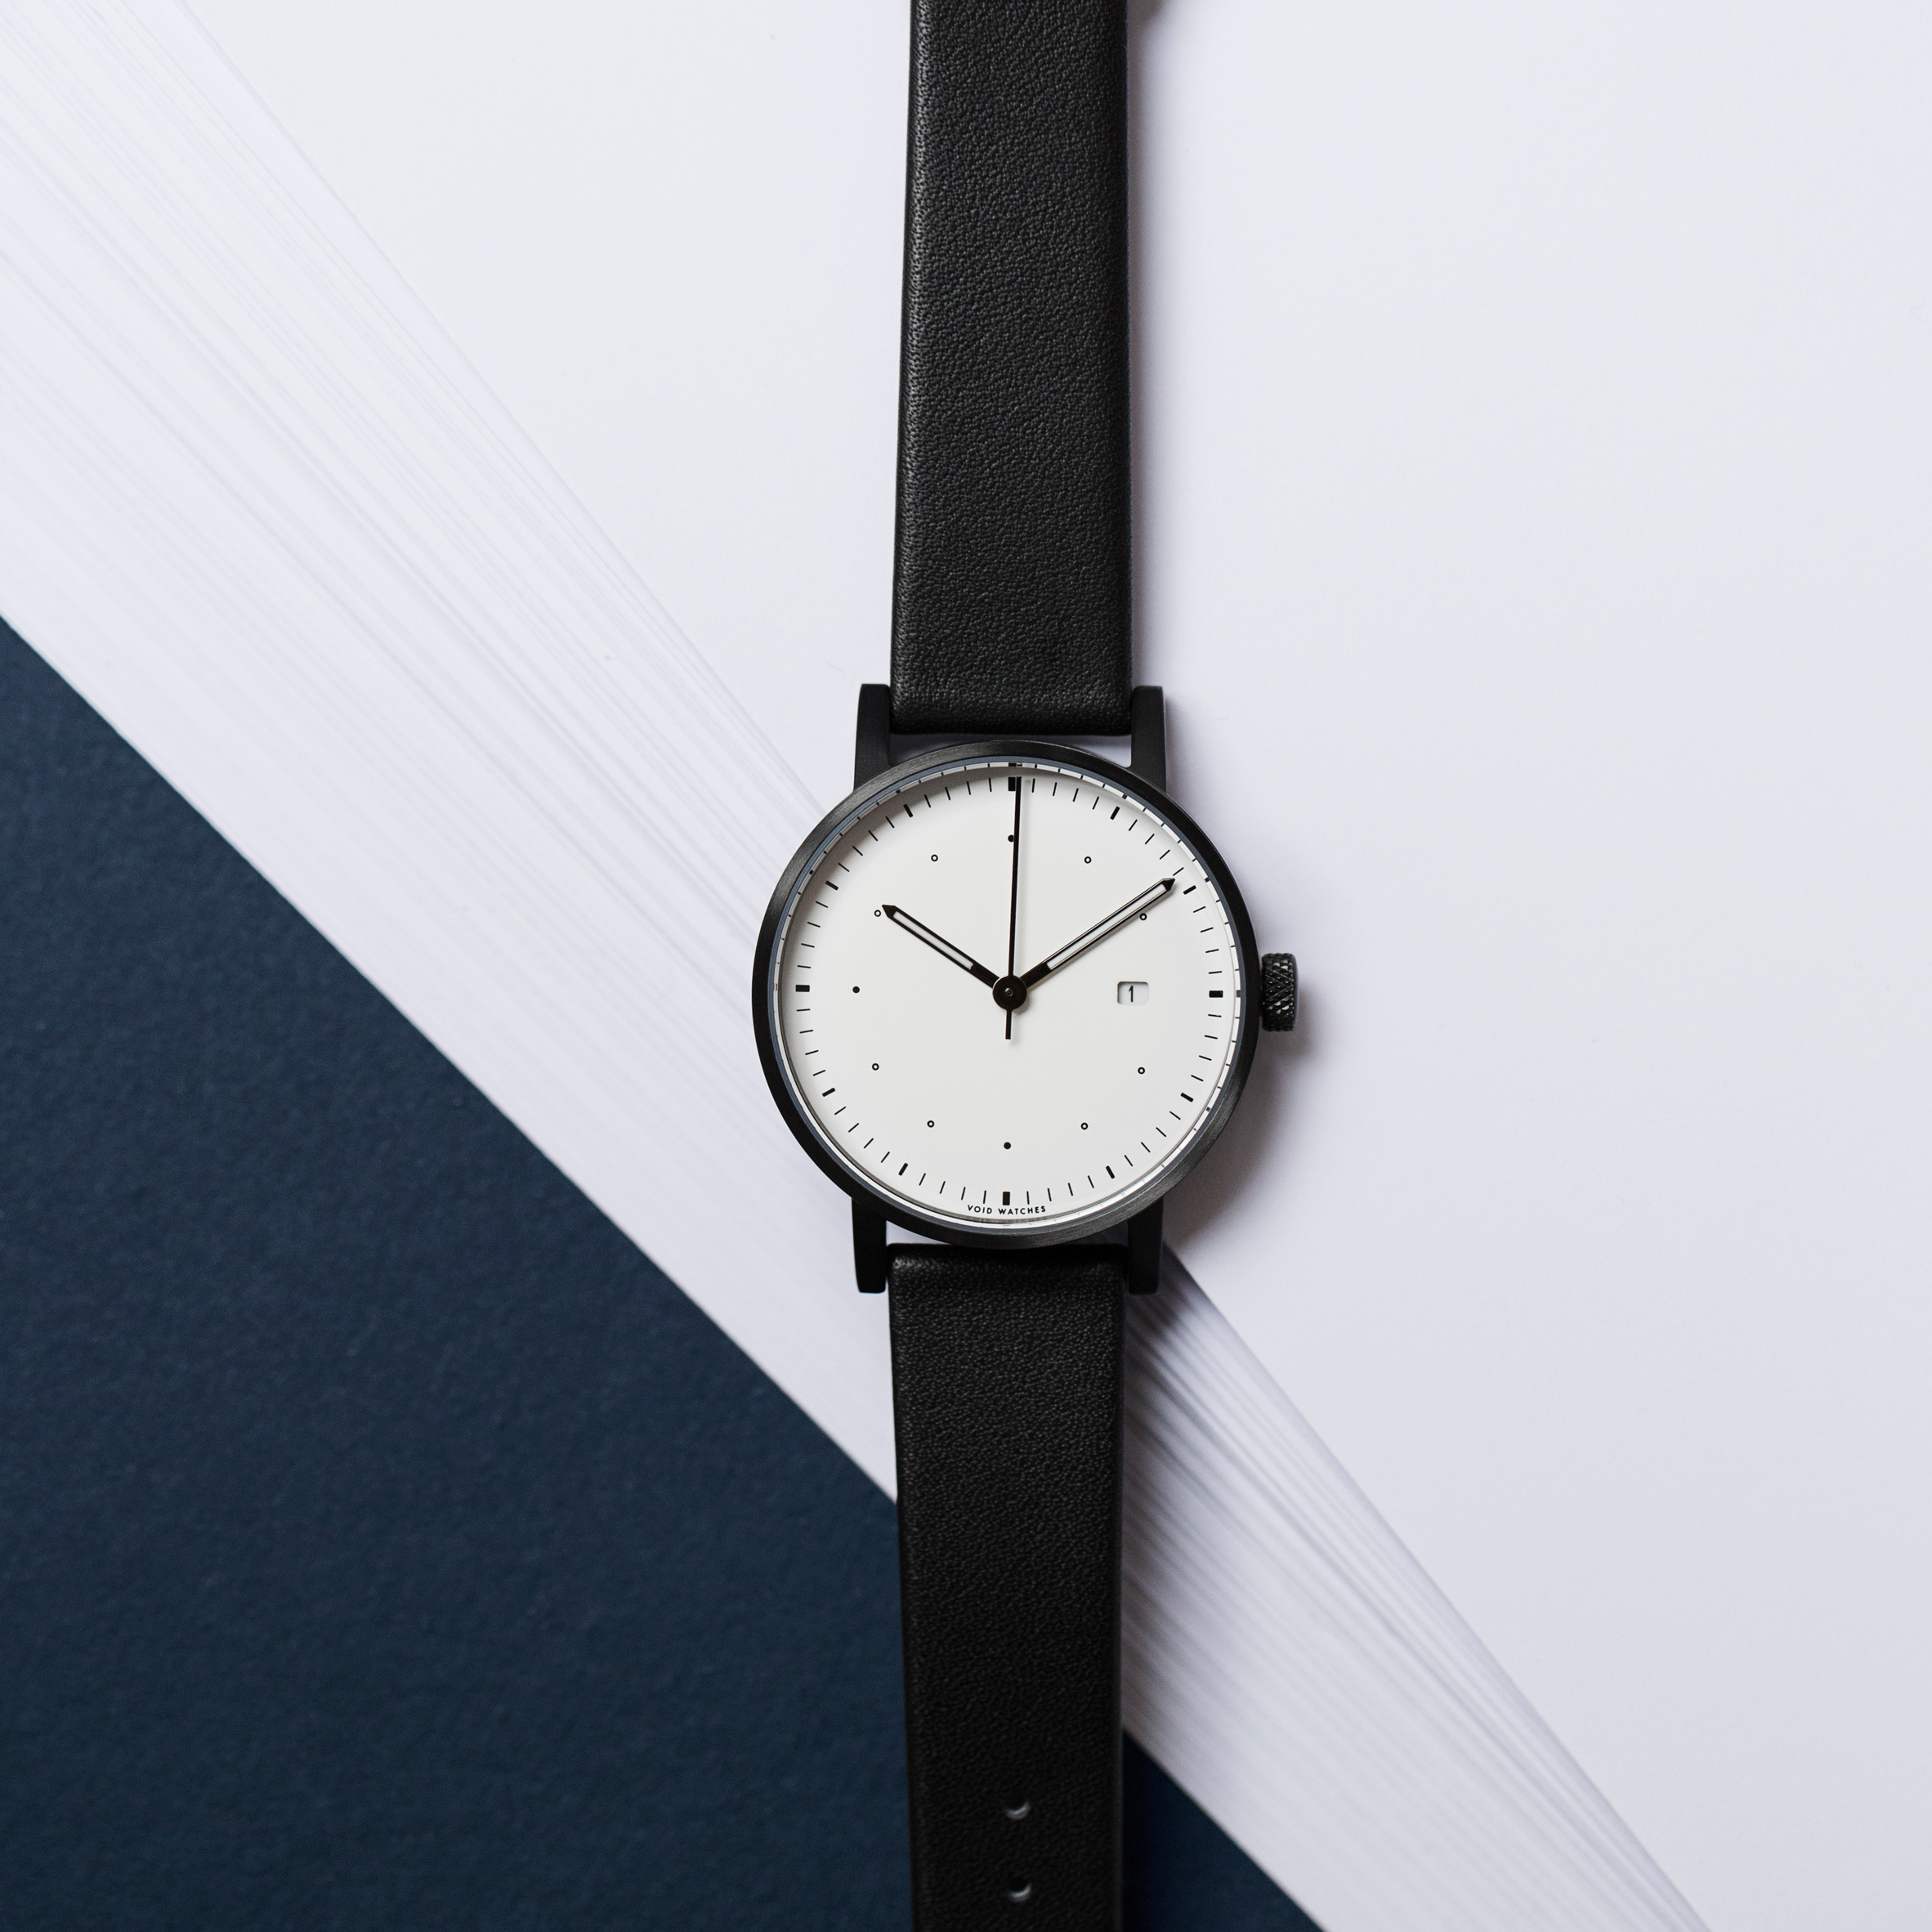 designs to blogs design for large aesthetic easy lissoni watch s by brings watches alessi architects bergo read tic minimal architect designed his clean and